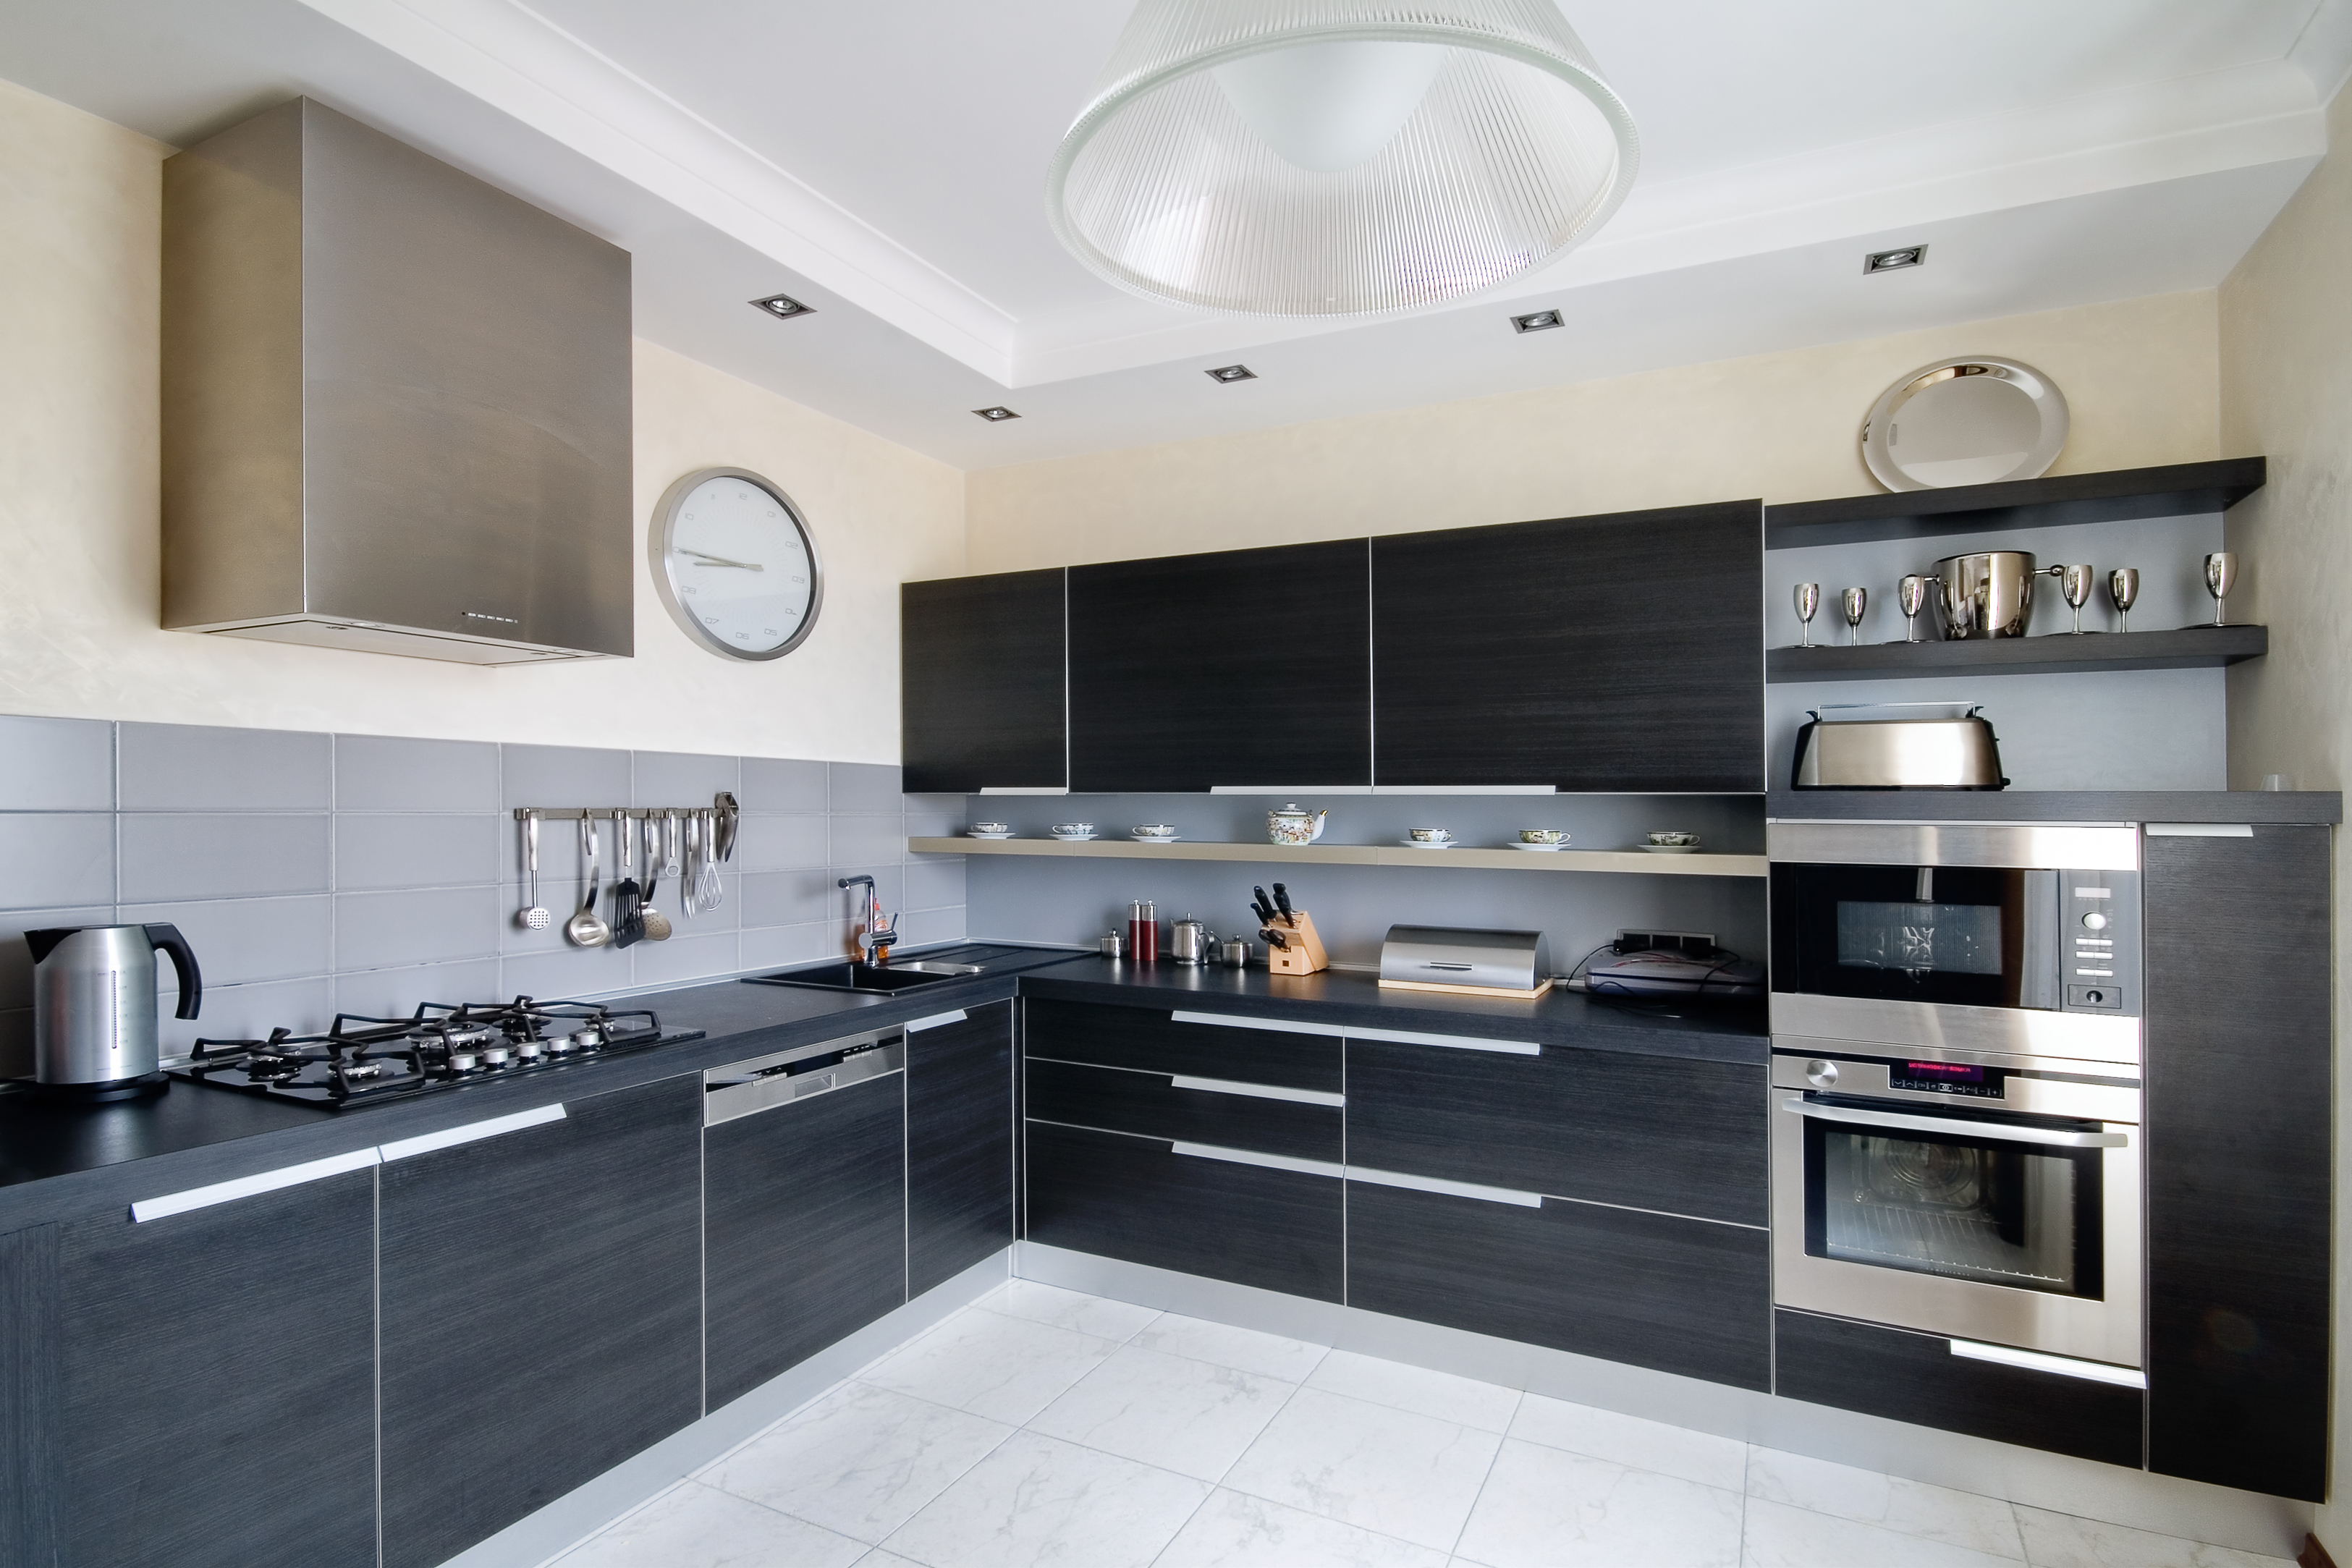 Interior of modern kitchen in a private house